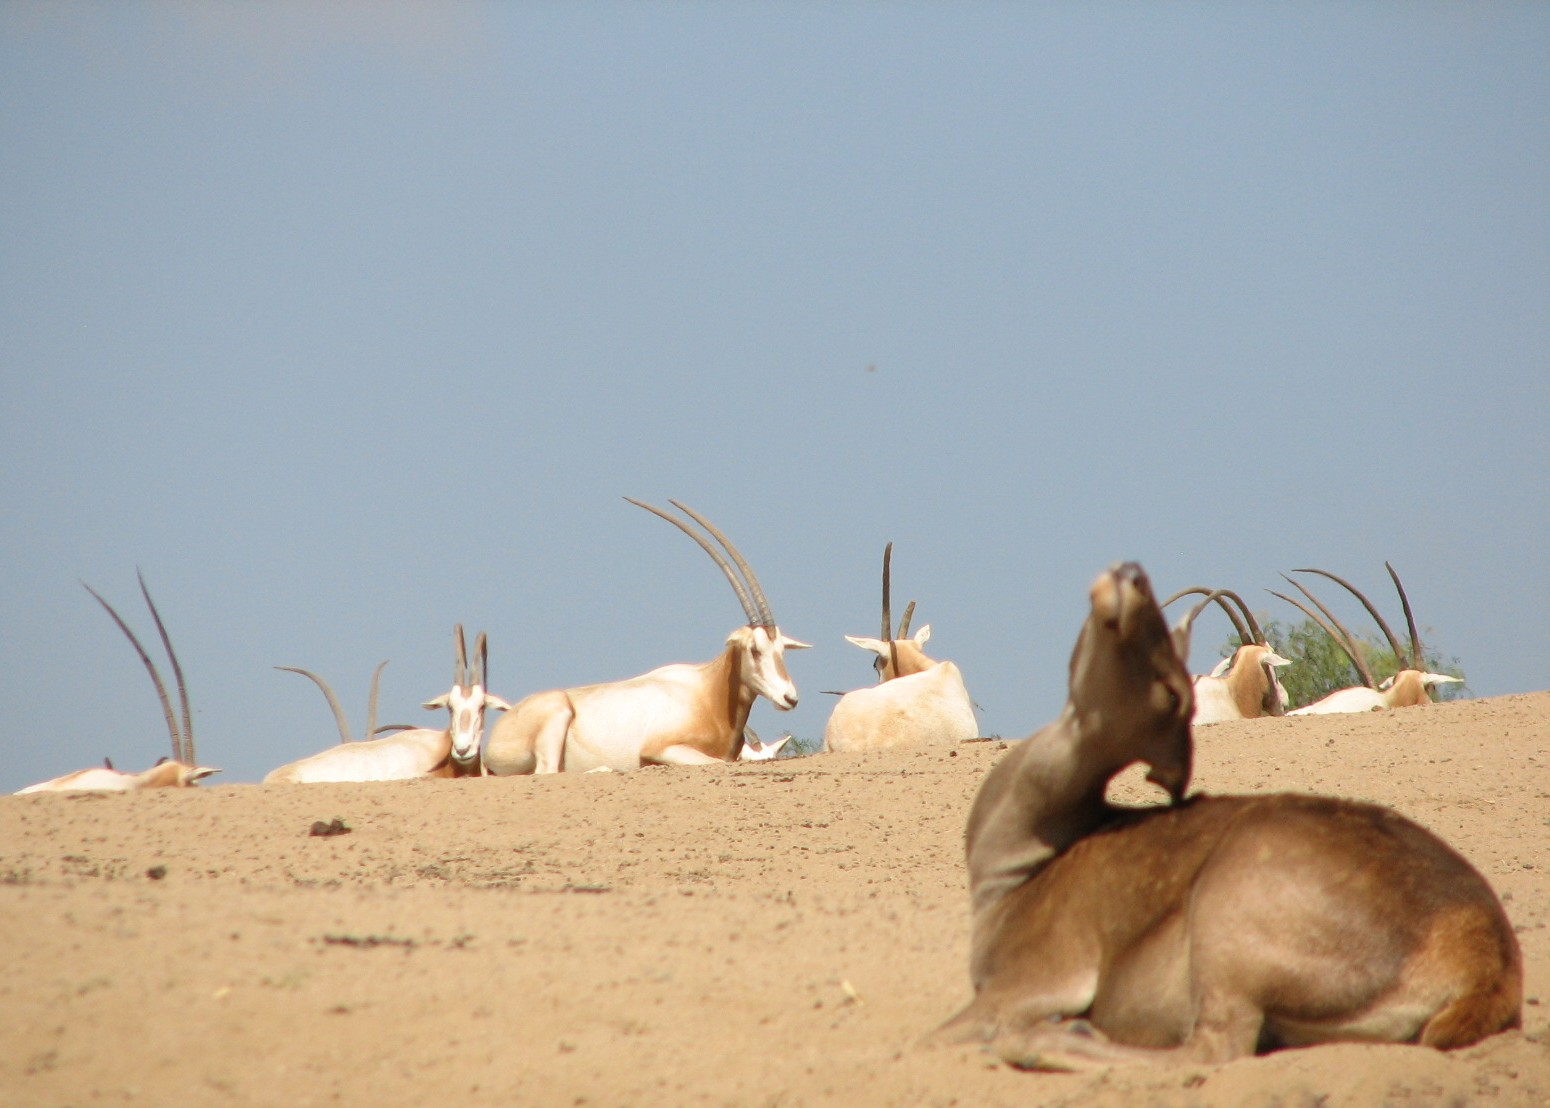 https://www.zoochat.com/community/media/north-africa-exhibit-barbary-red-deer-and-scimitar-horned-oryx.71203/full?d=0